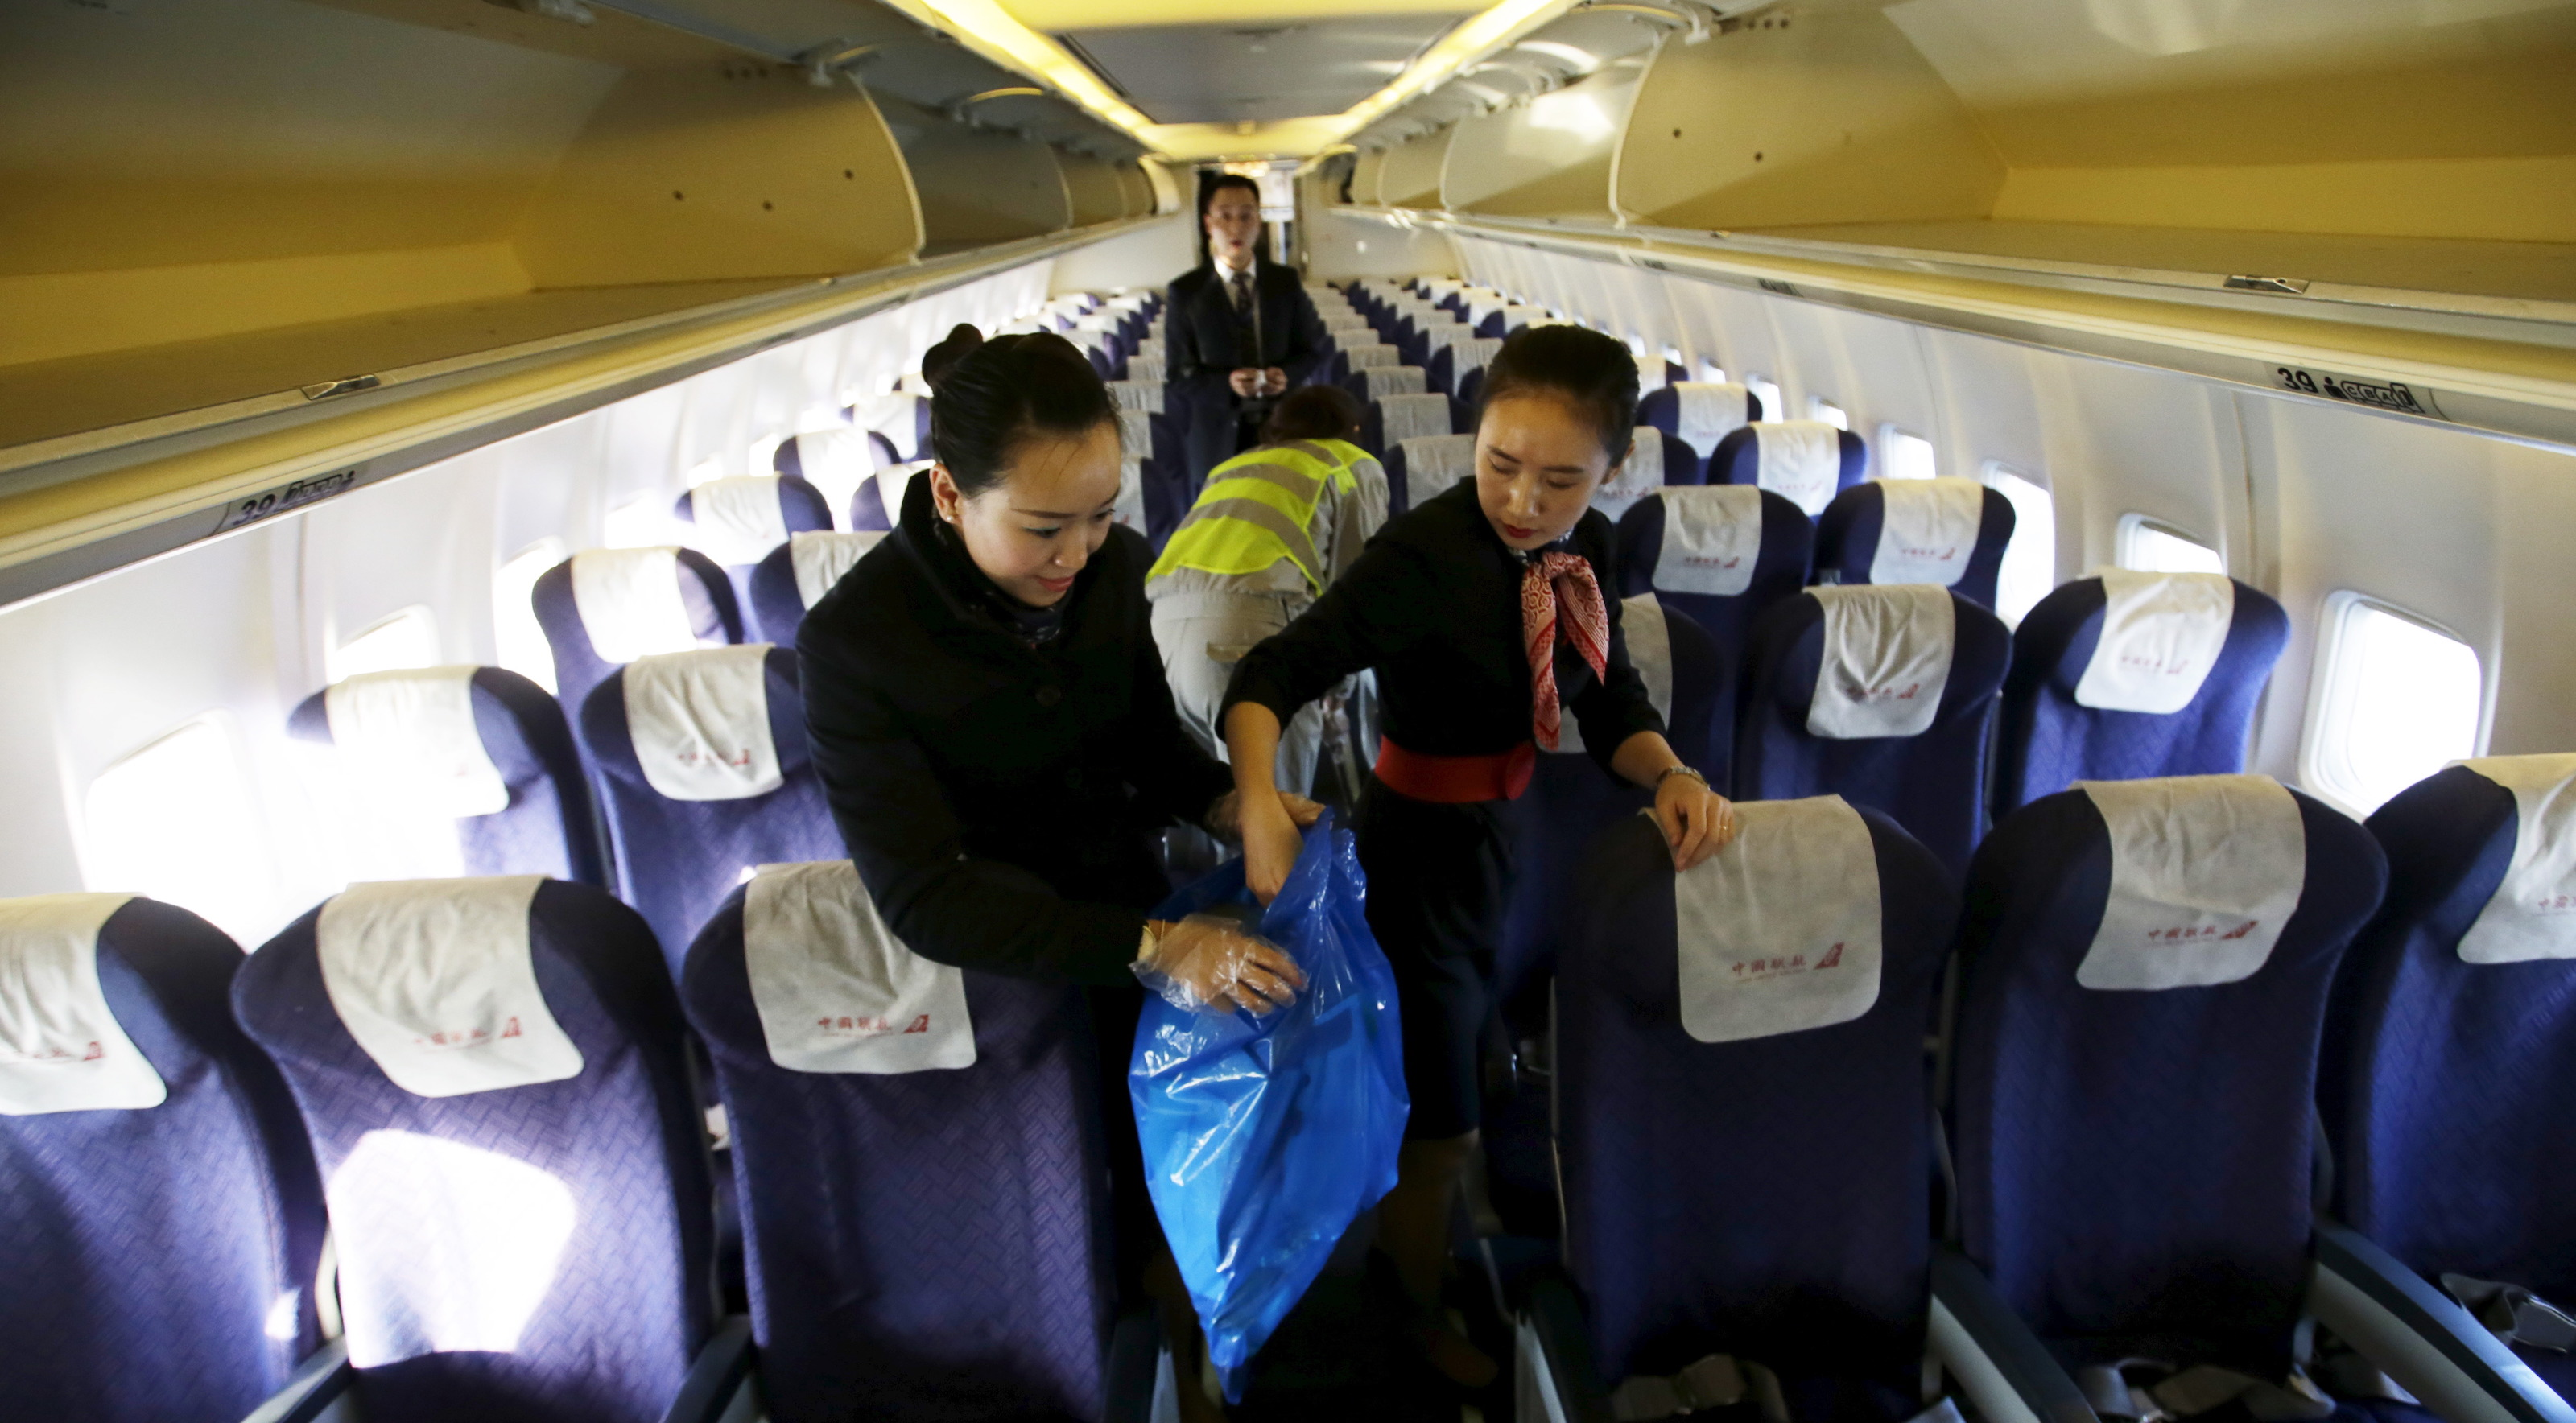 Flight attendants are more likely to get cancer than most, according to a new Harvard study